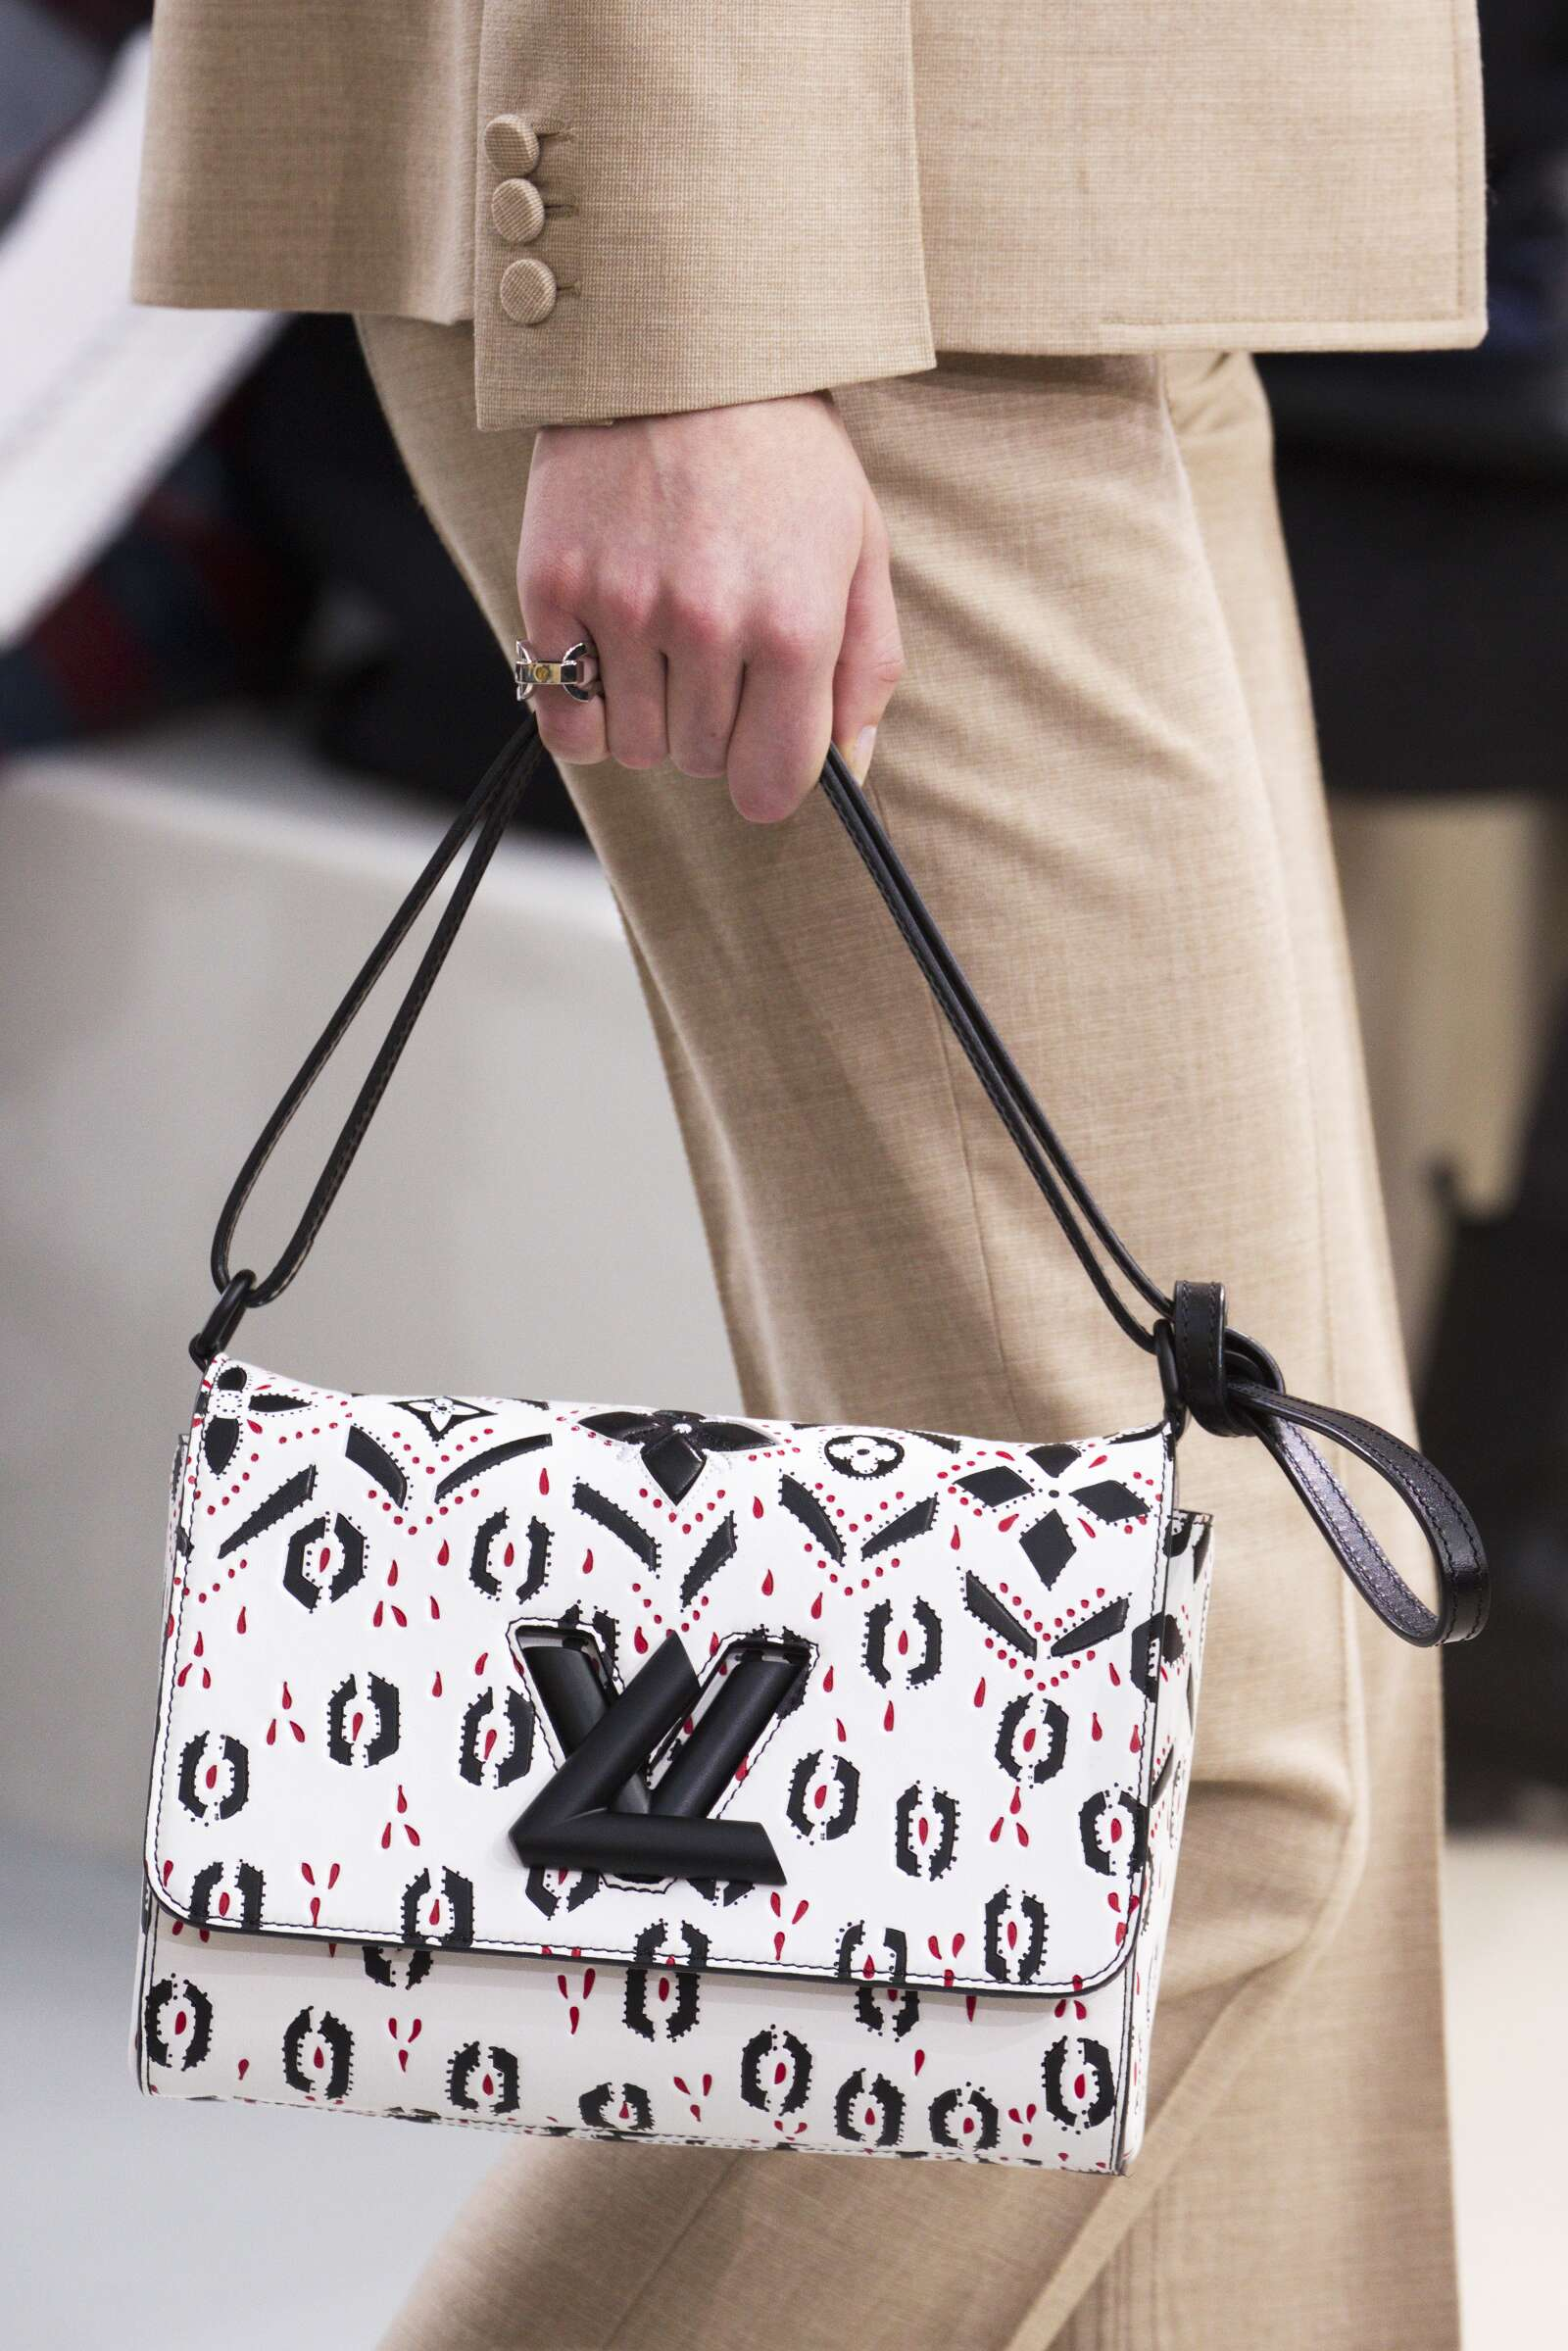 Louis Vuitton Bag Details Collection Paris Fashion Week